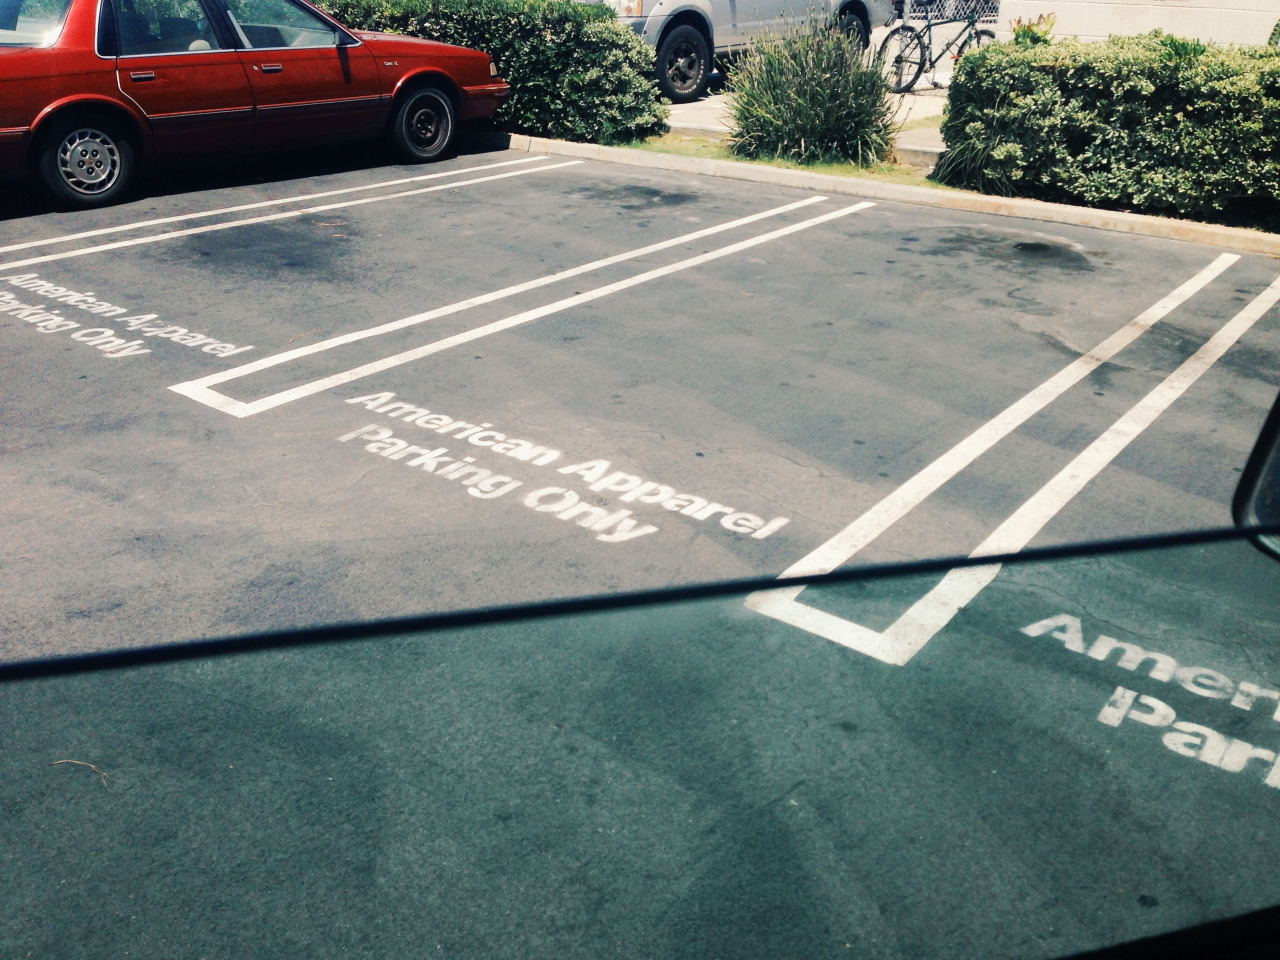 American apparel parking only.